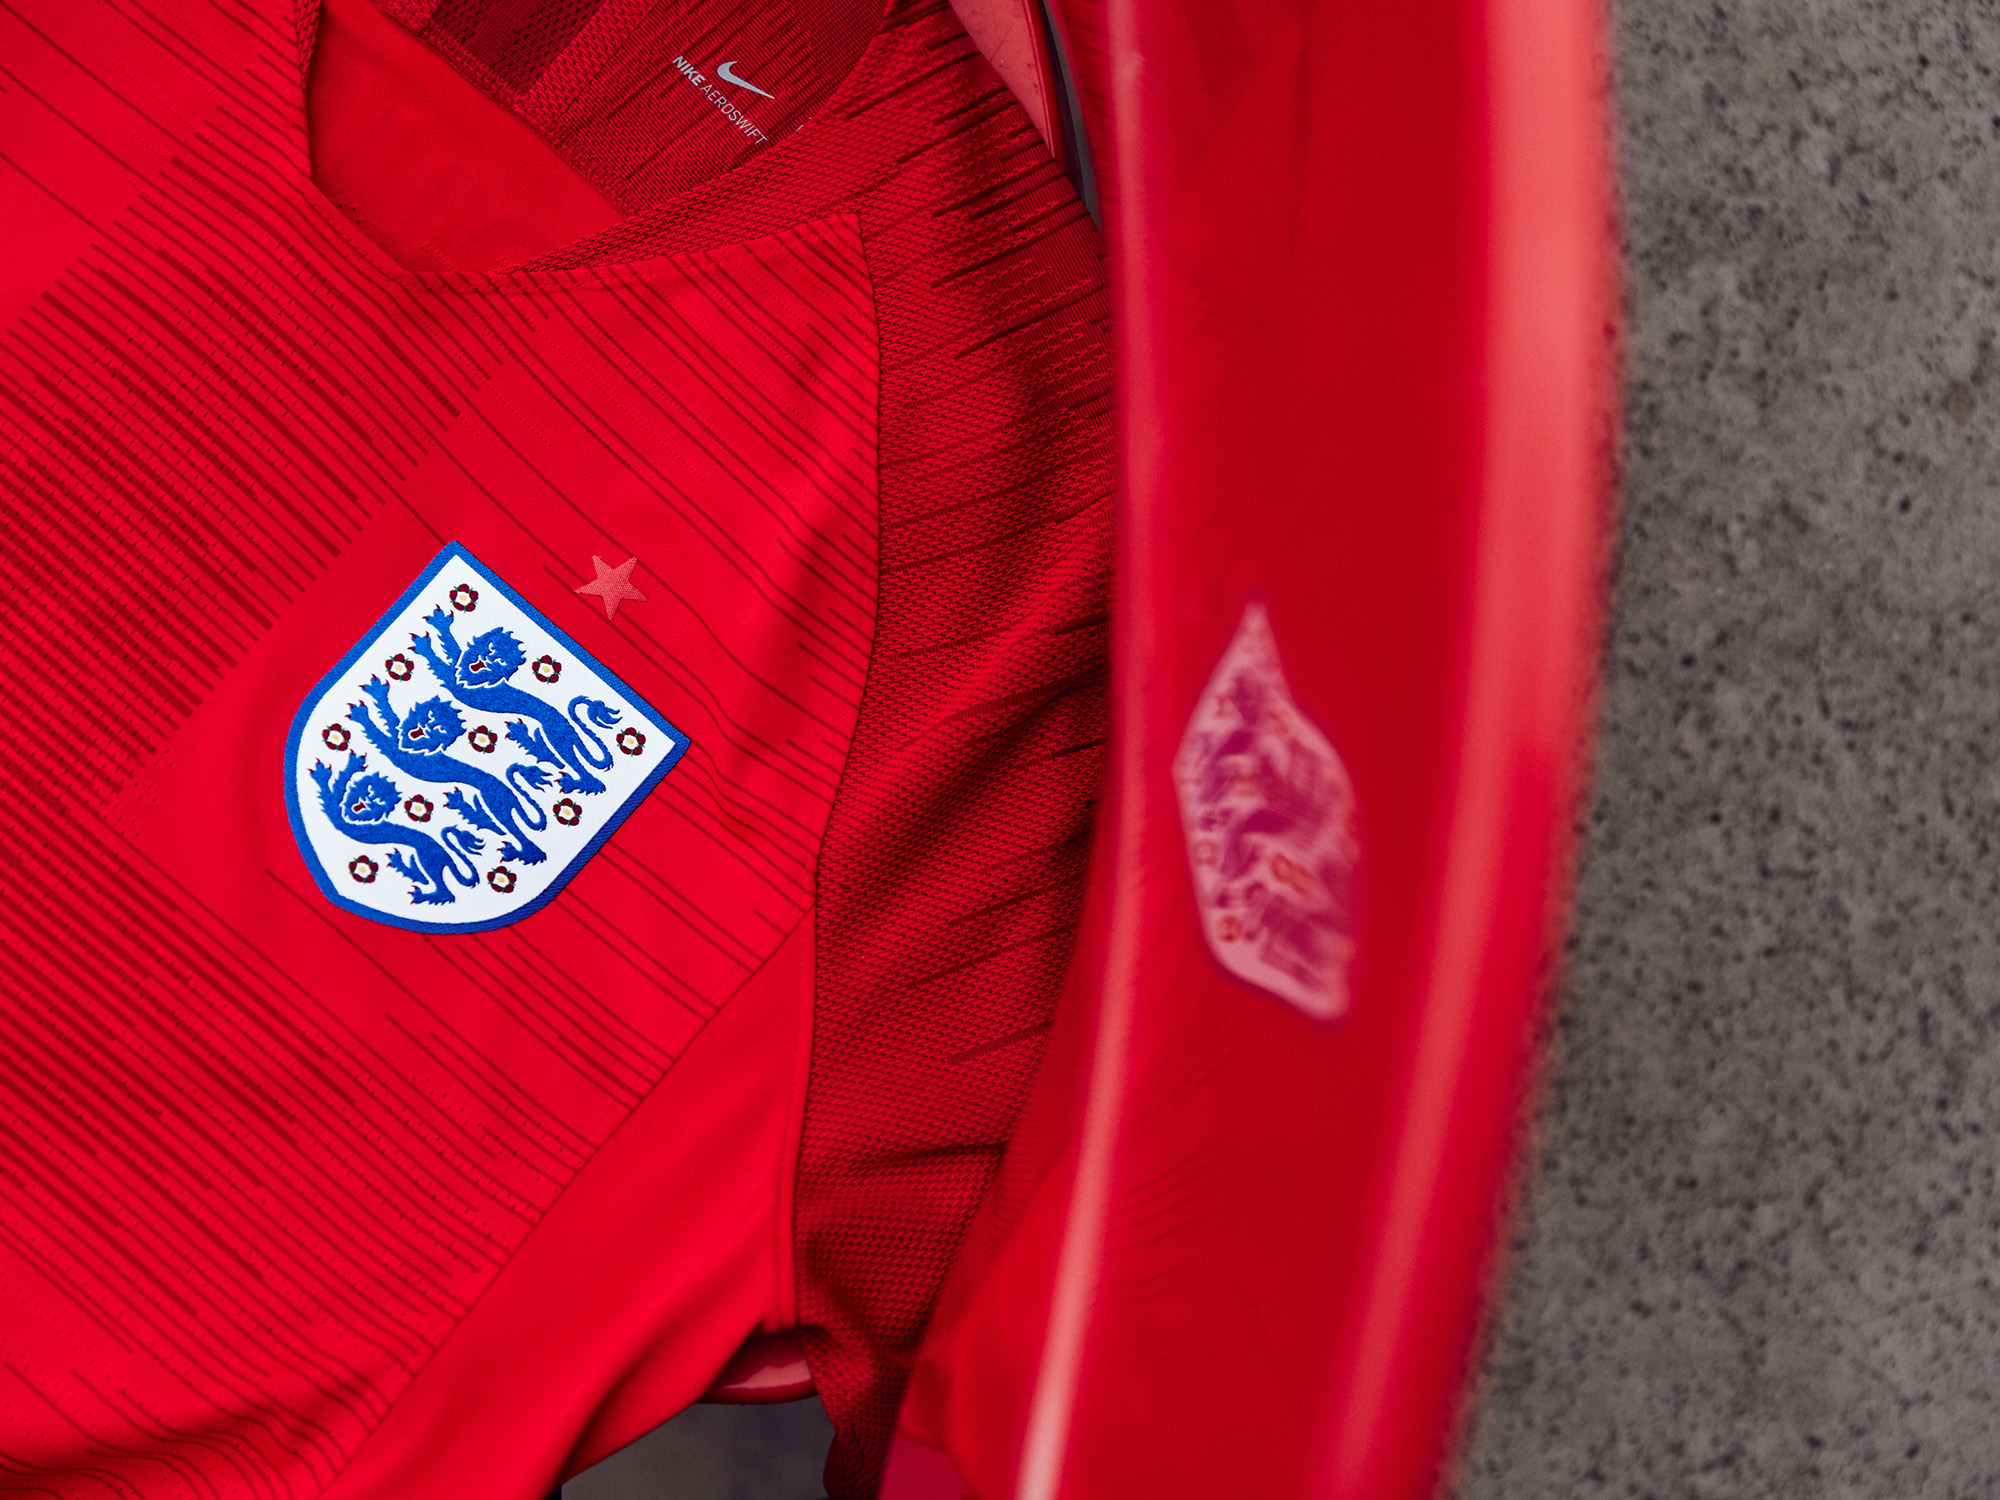 Nike-News-Football-Soccer-England-National-Team-Kit-10_77383